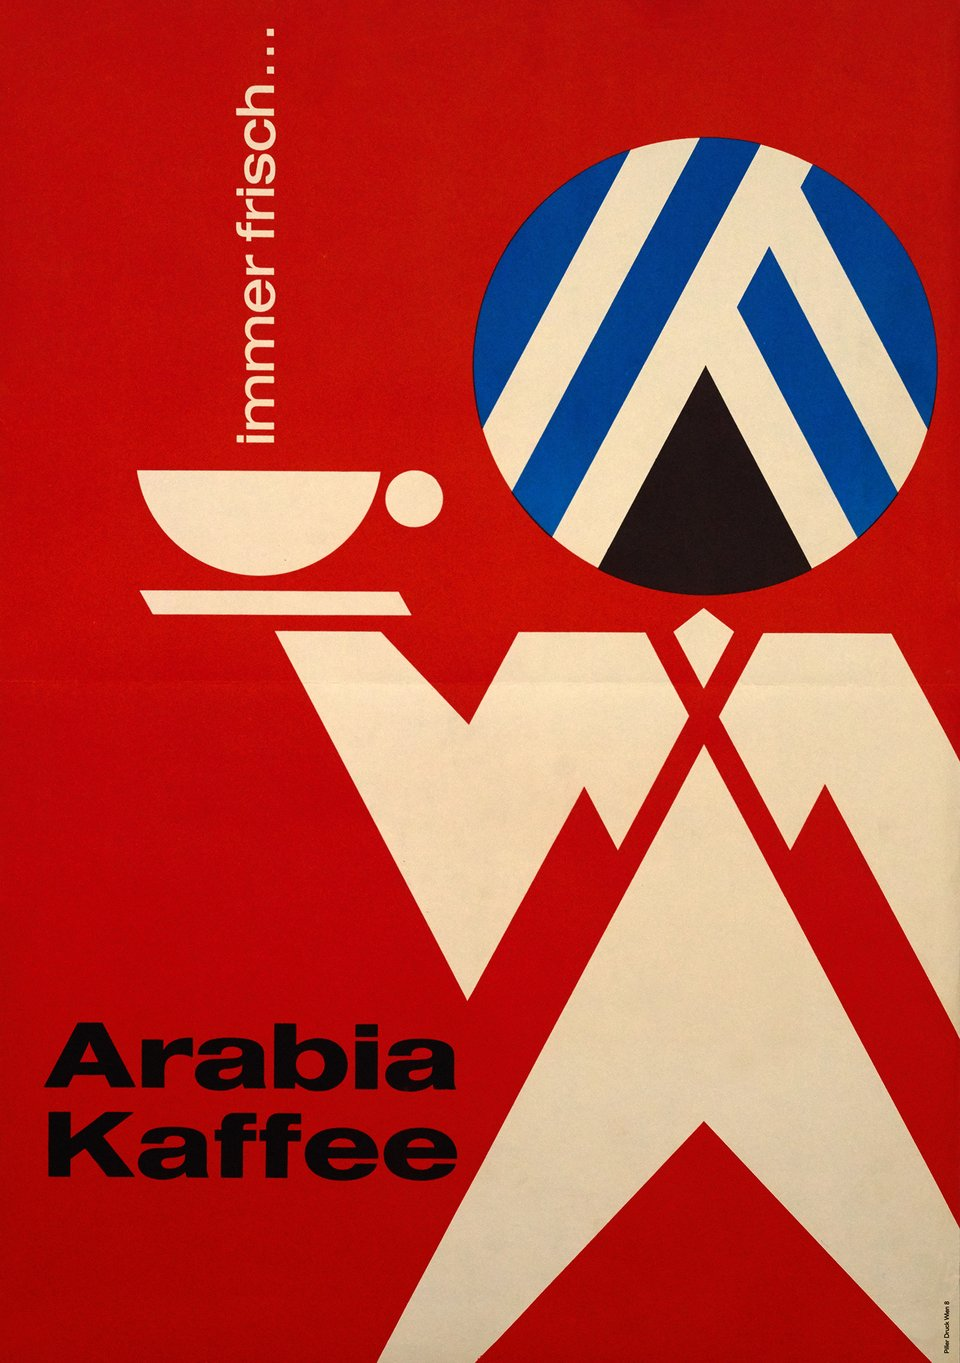 Arabia Kaffee – Vintage poster – ANONYMOUS – 1950